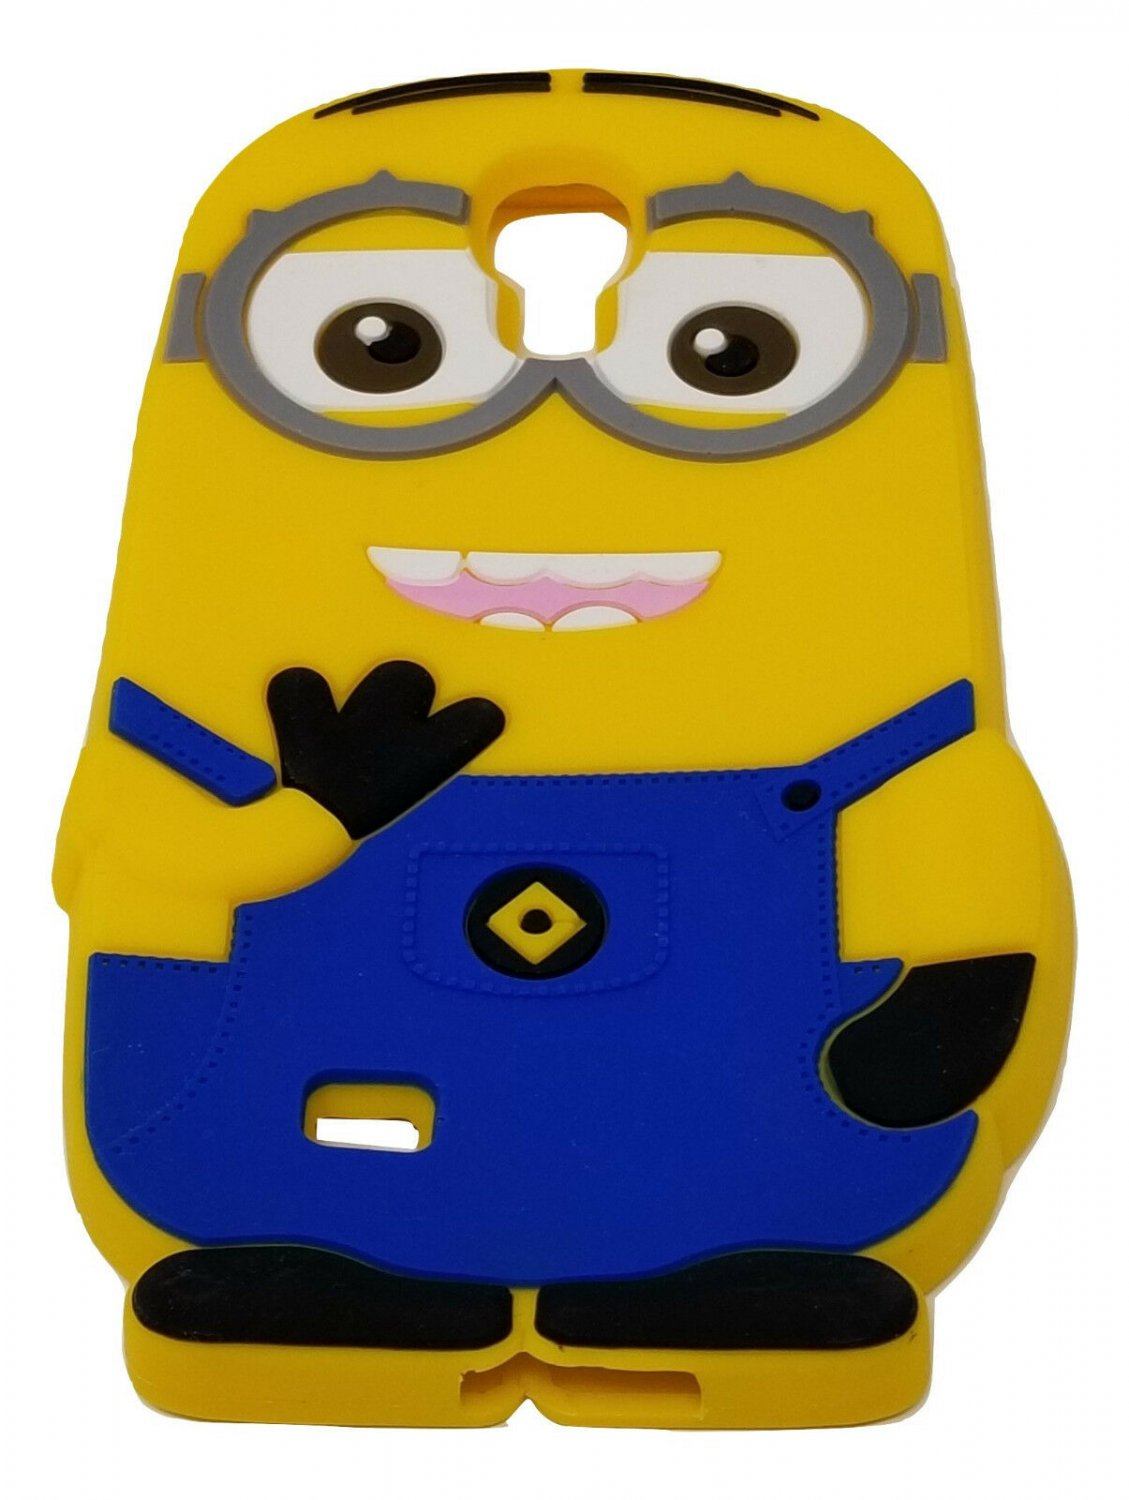 Despicable Me Minion 3D Soft Silicone Gel Case Cover for Cell Phone